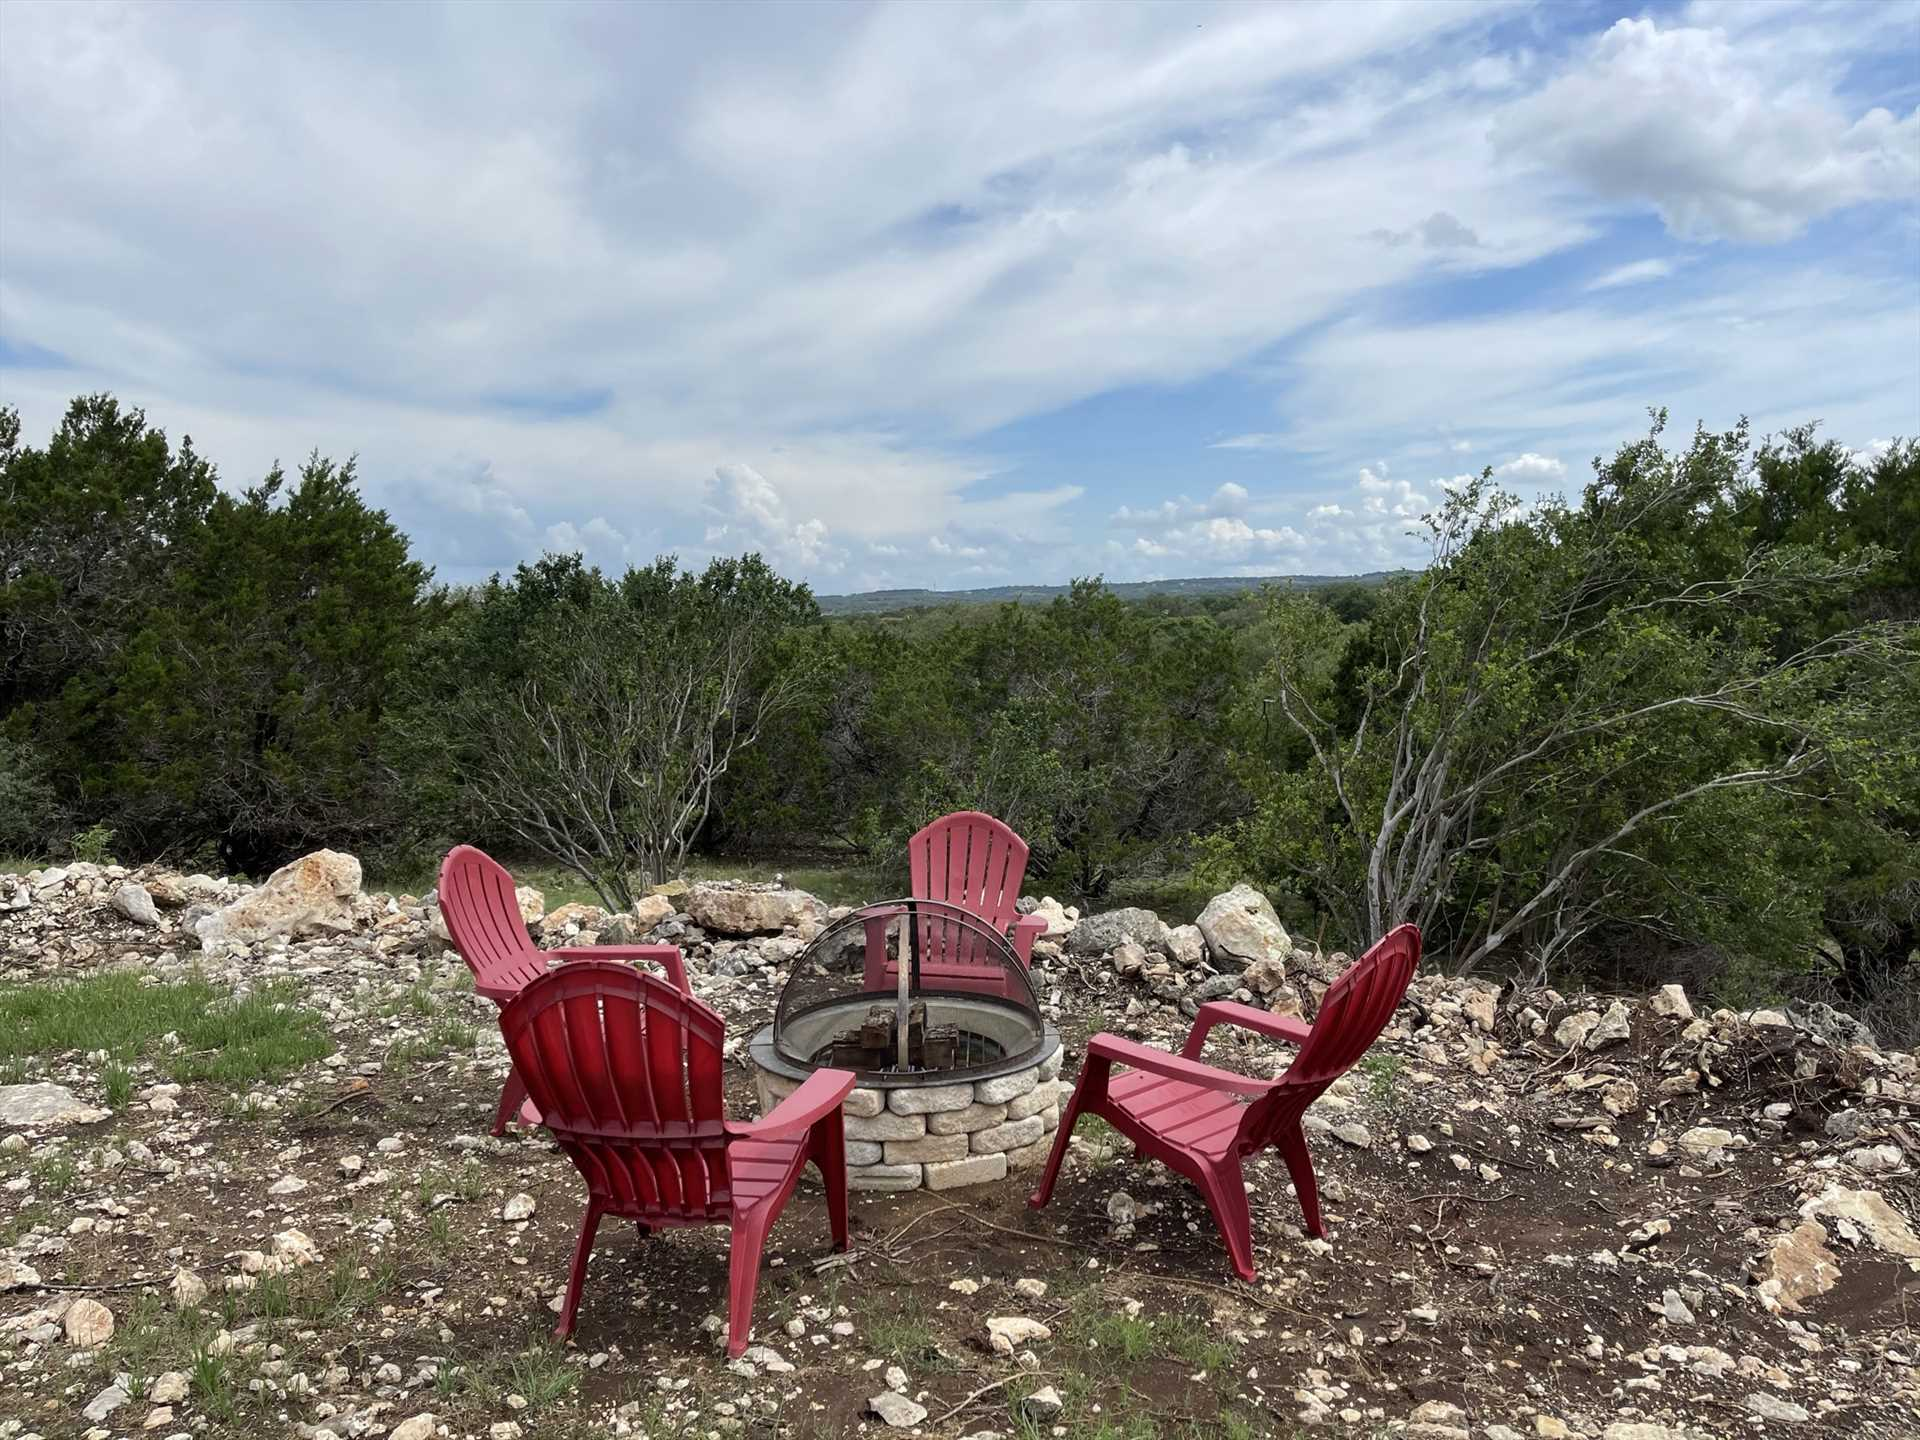 Yup, there's a fire pit, and that's awesome-but just look at the VIEW from that fire pit!